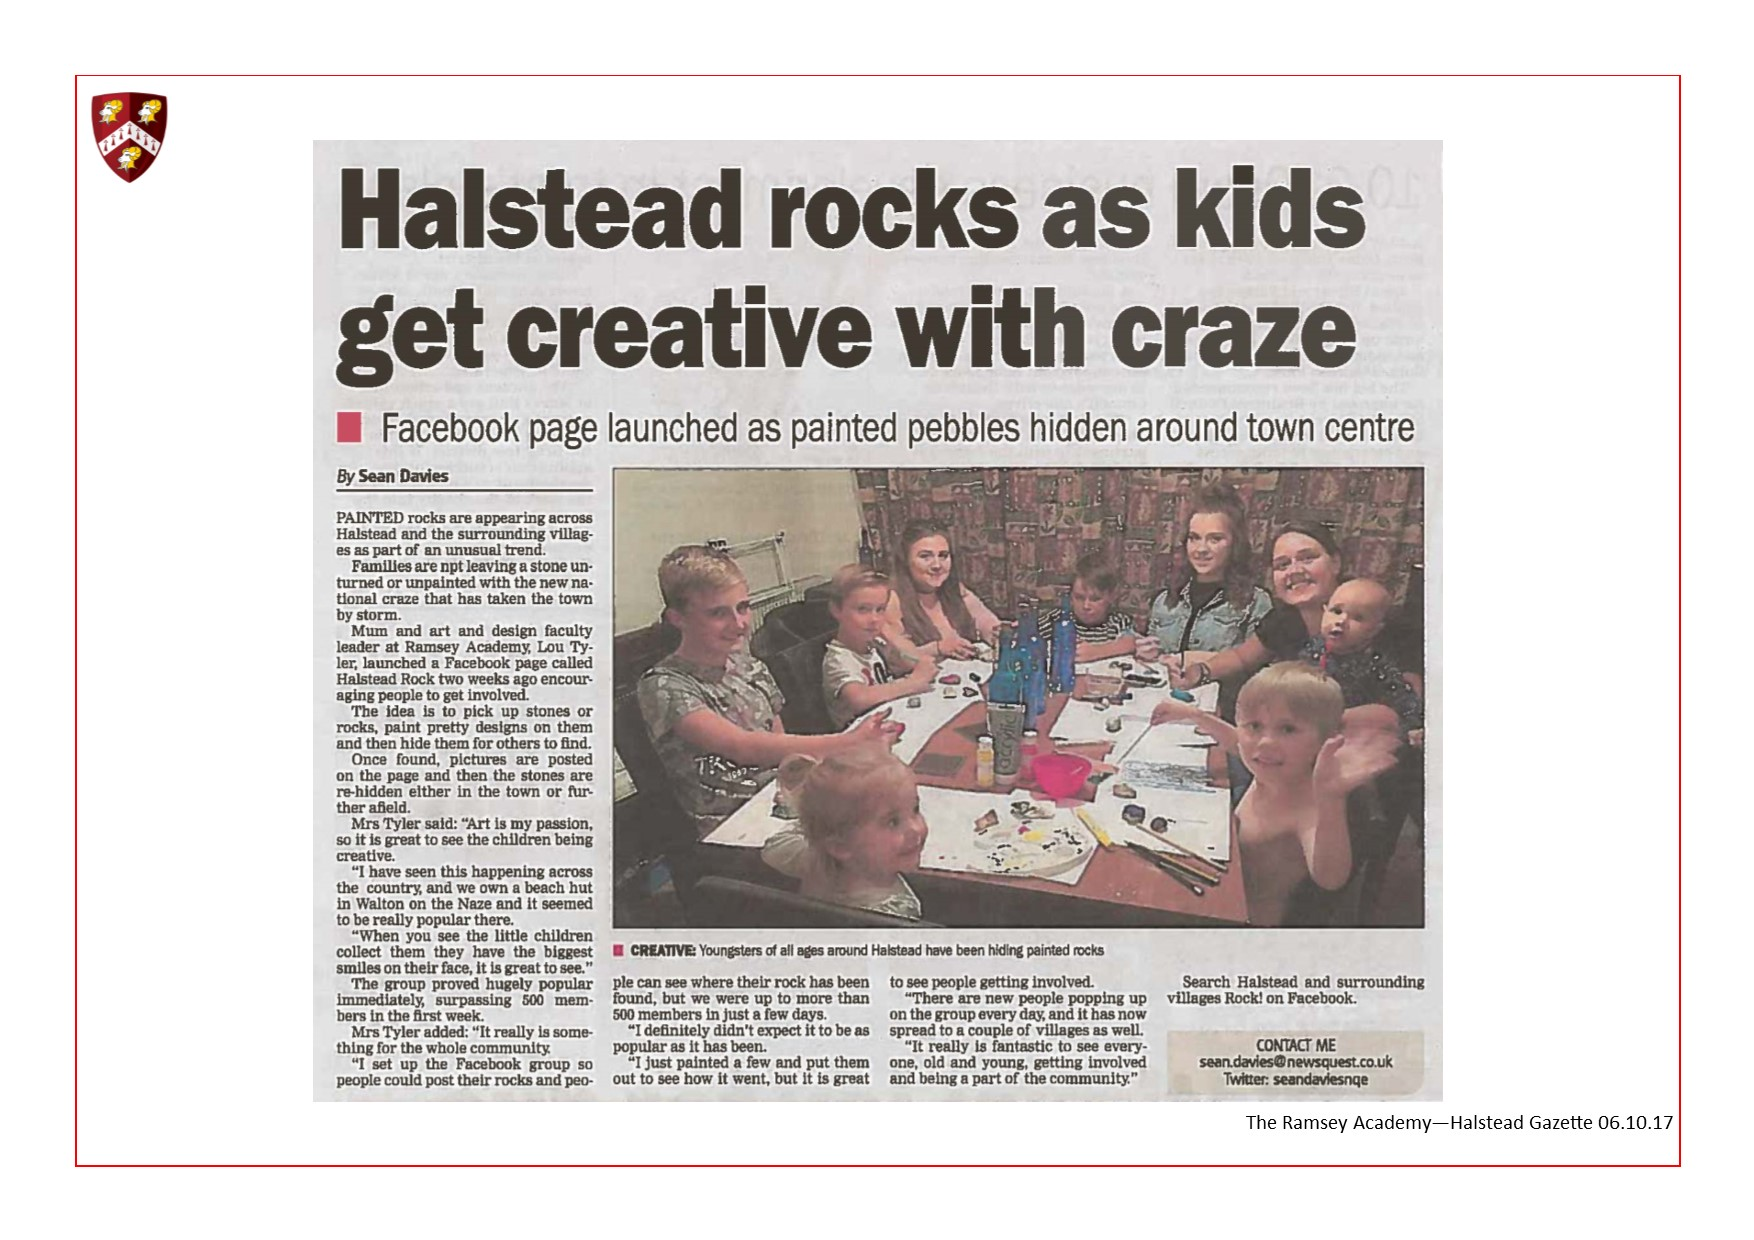 Halstead Rocks As Kids Get Creative With Craze 06.10.17